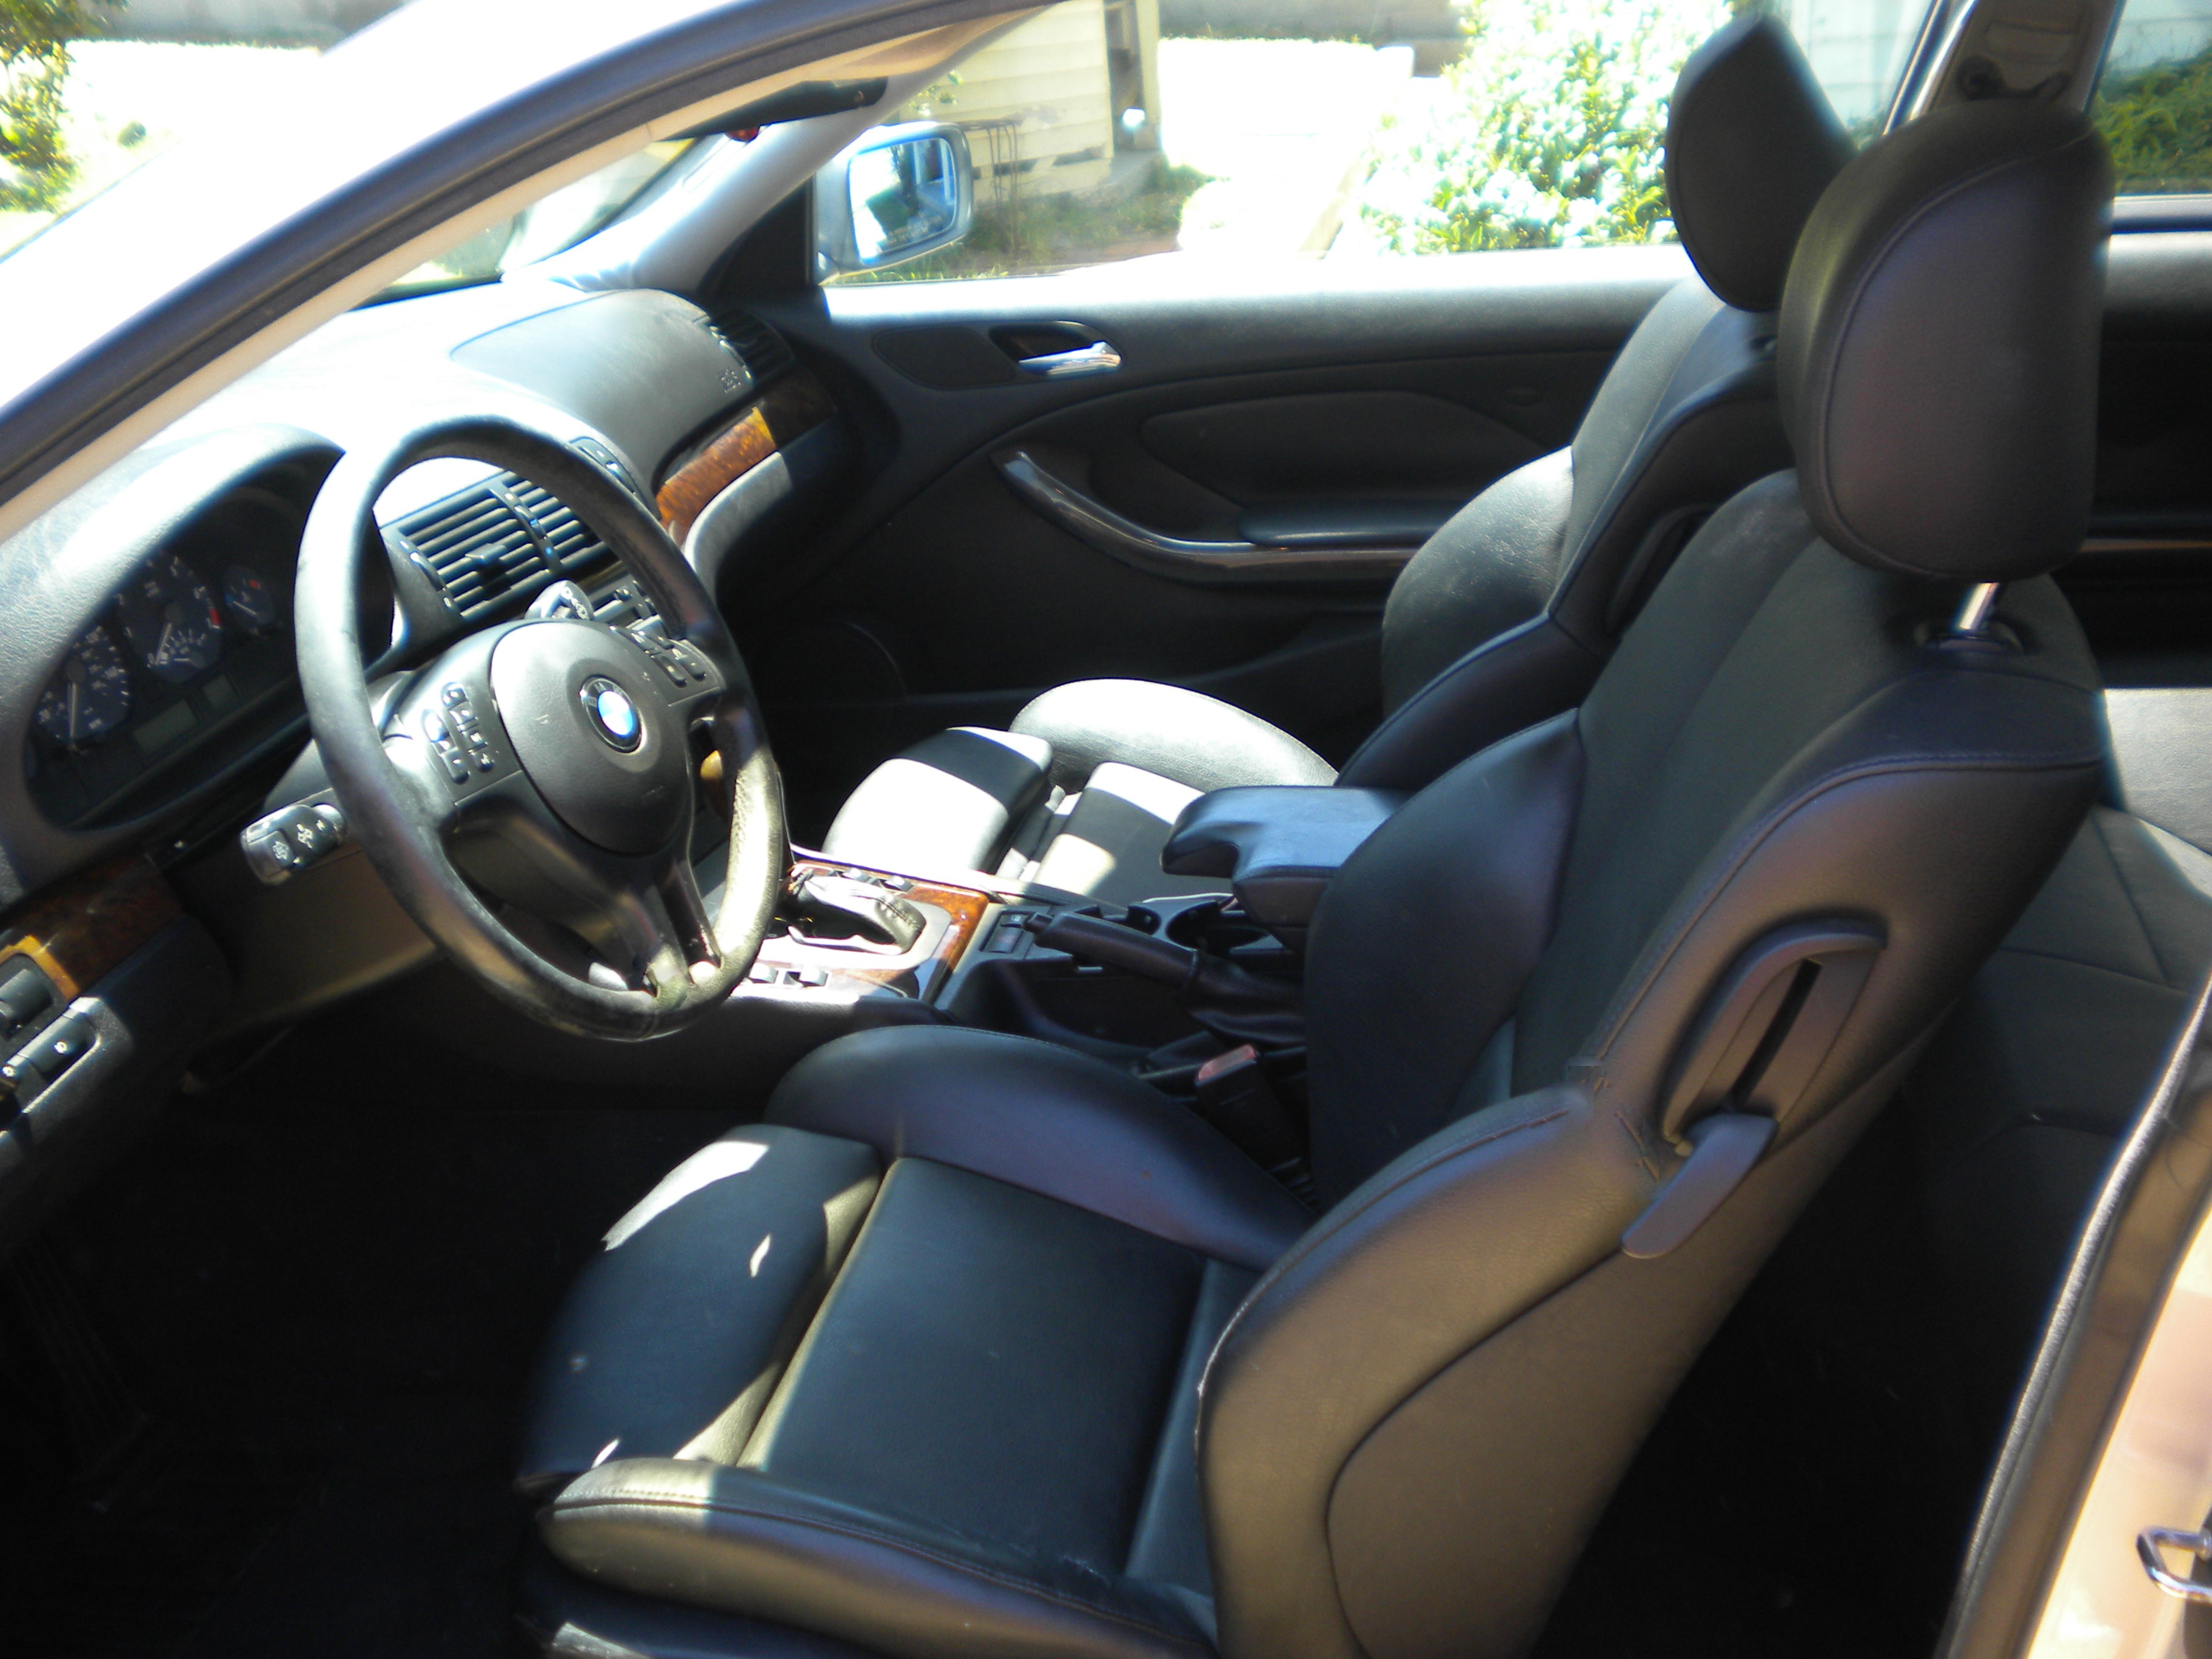 Used 2004 325Ci BMW For Sale